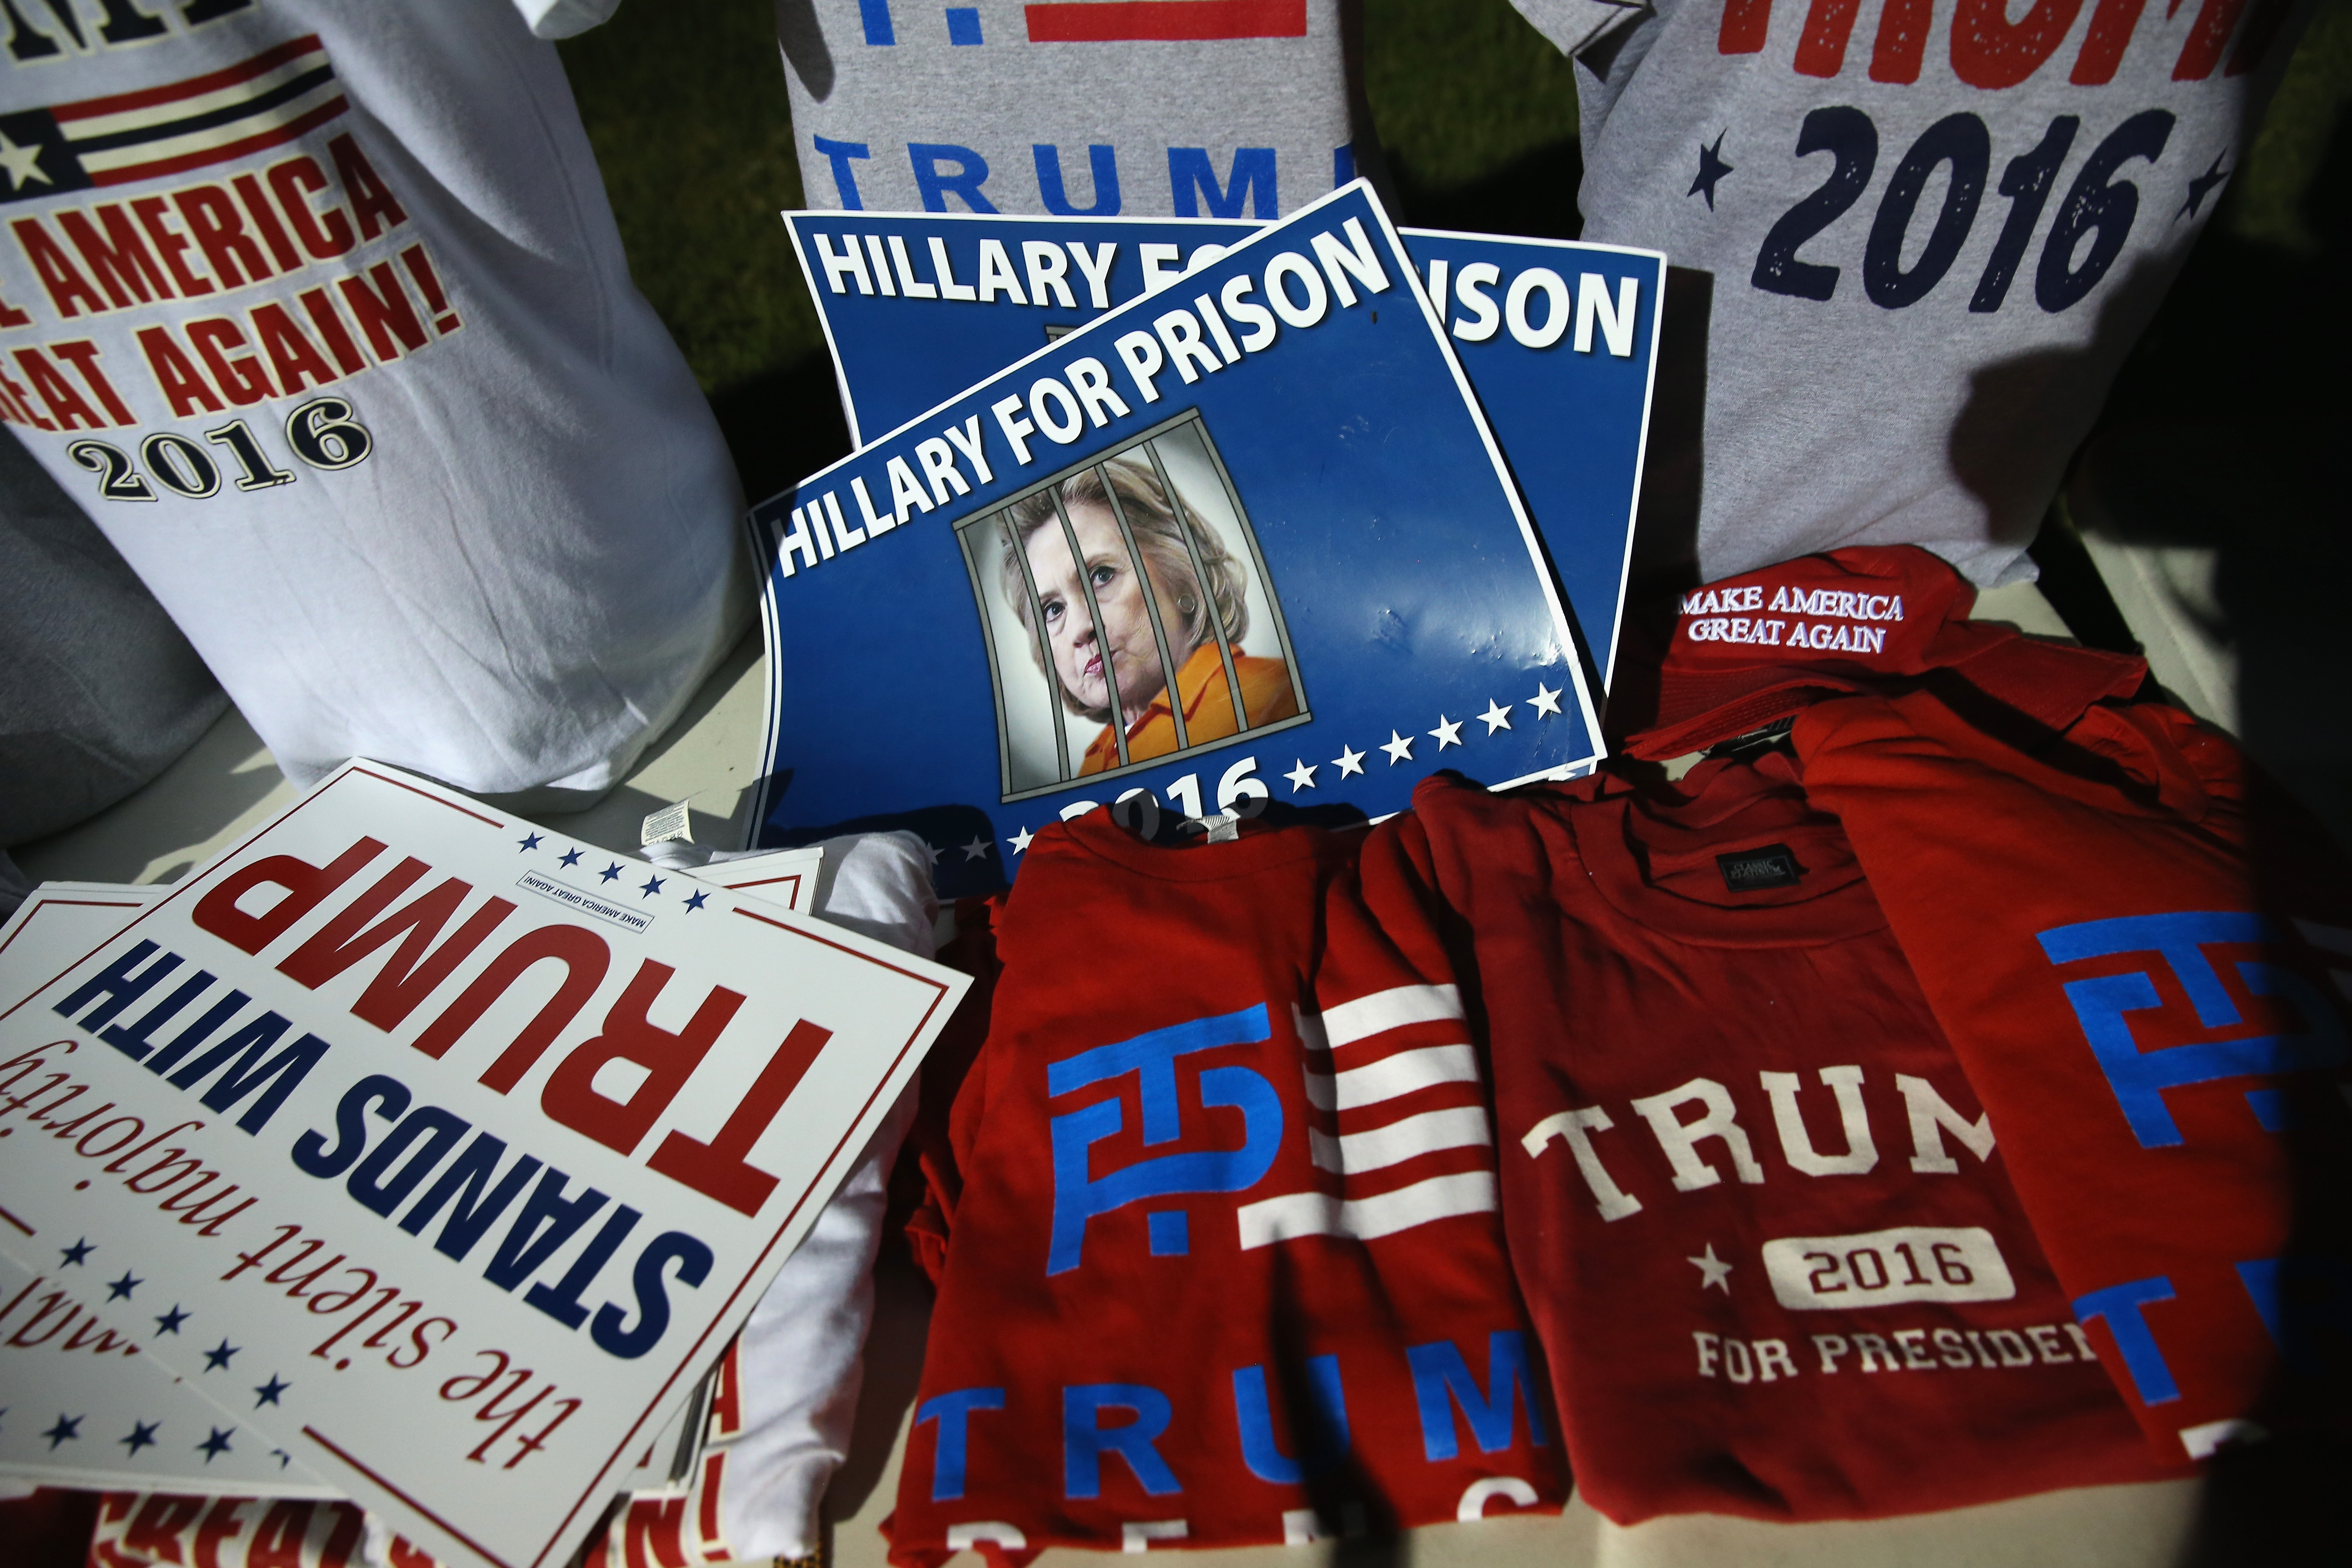 T-shirts and posters sit for sale outside a rally for Republican presidential nominee Donald Trump on August 23, 2016 in Austin, Texas.